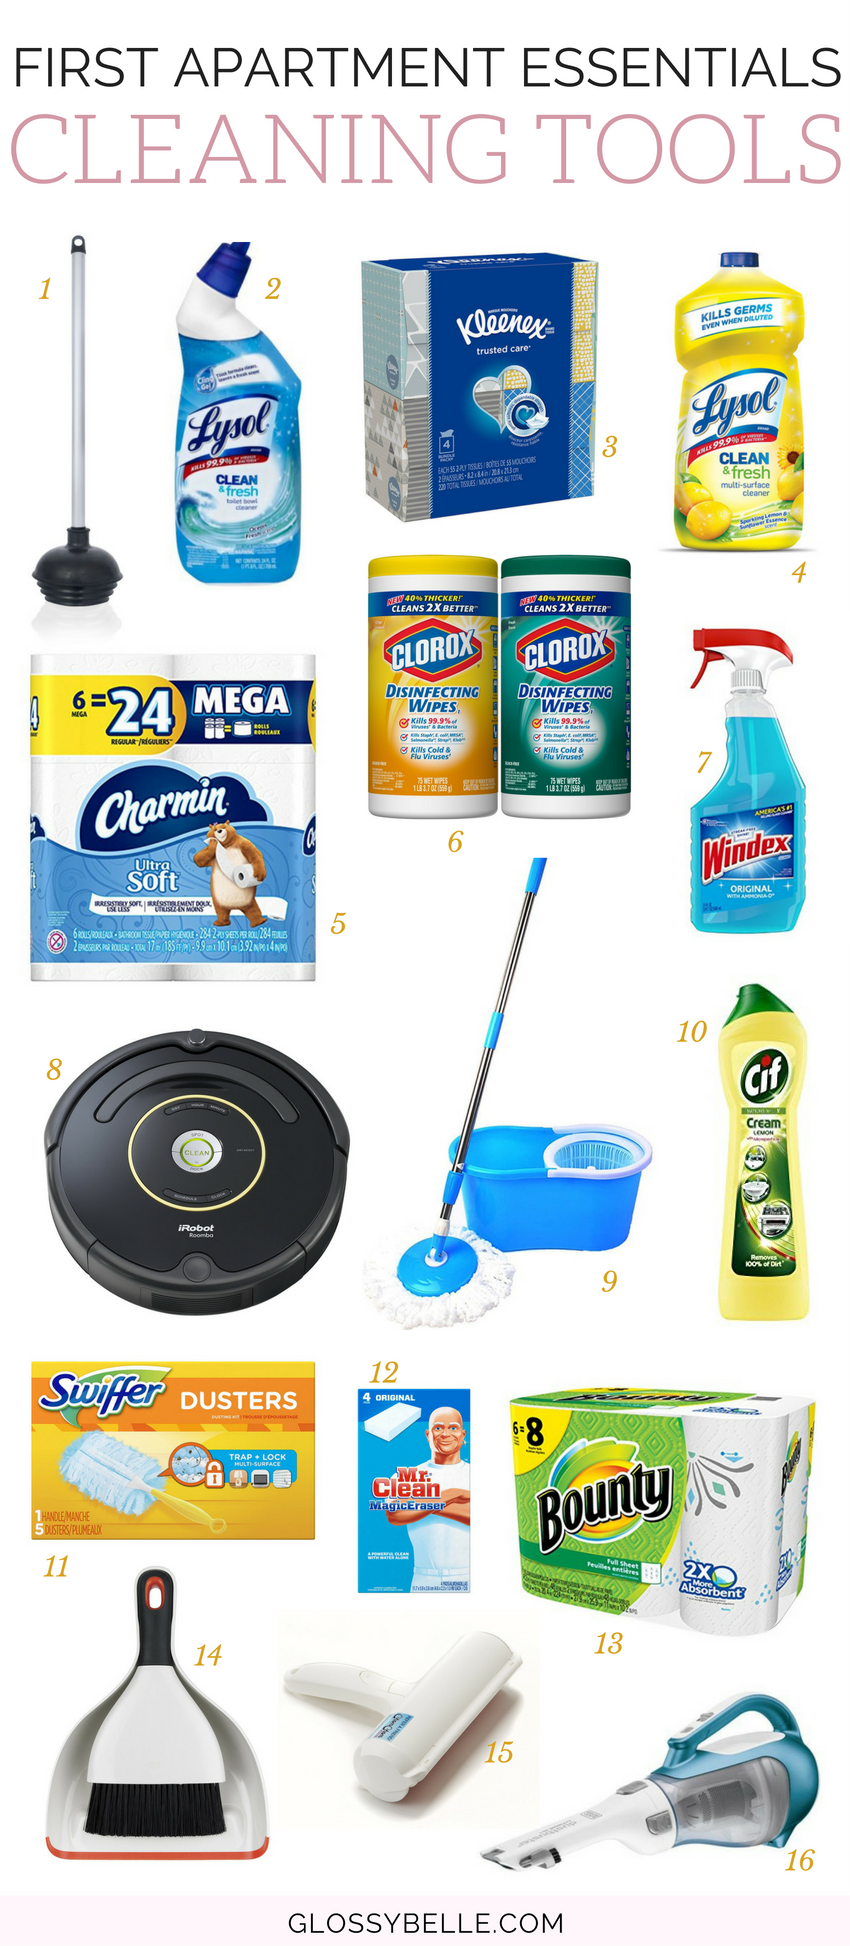 If you're about to move out into your first apartment, here are the most important apartment essentials you'll need to be ready to move out on your own.   adulting   move out for the first time   moving out   independence   college essentials   college dorm   room essentials   home decor   cleaning essentials   cleaning tools   cleaning supplies #apartment #adulting #cleaningtips #cleaninghacks #cleaning #home